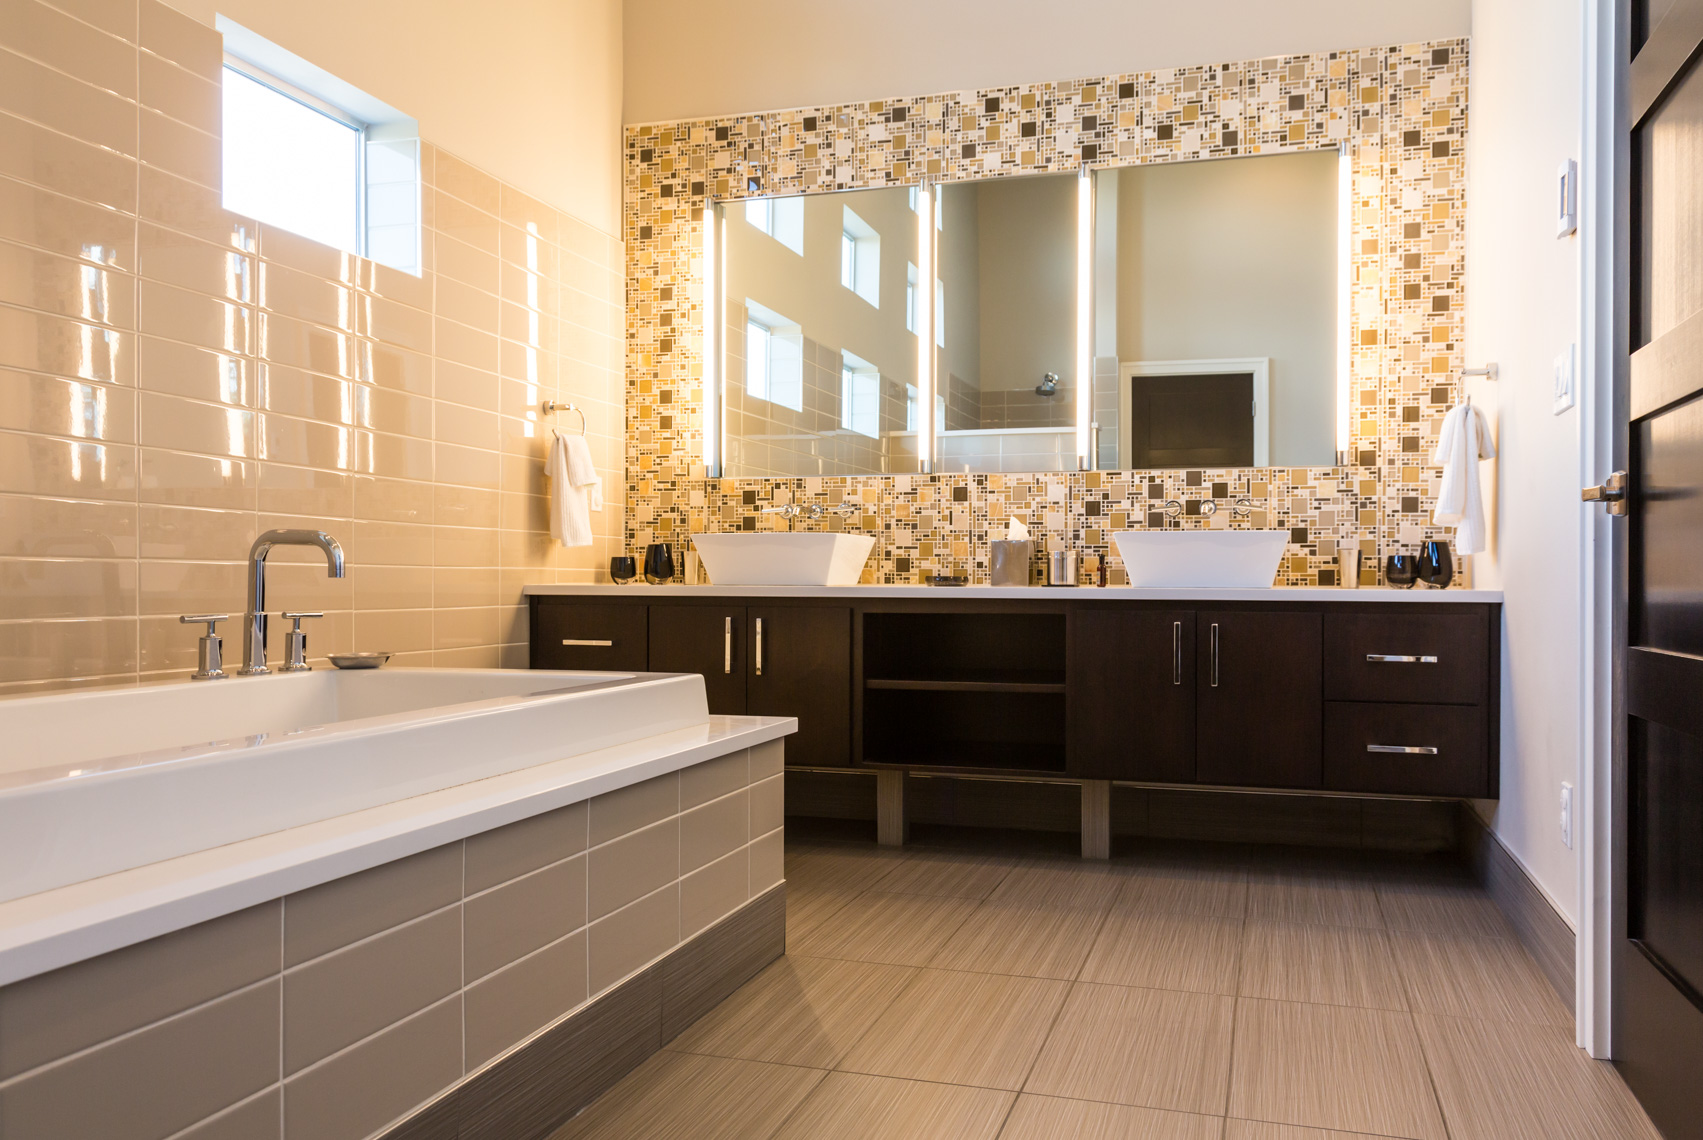 Contemporary upscale, modern home bathroom interior with tile walls and floors, vanity, mirrors, wood cabinets, acrylic soaking tub bathtub and high quality fixtures